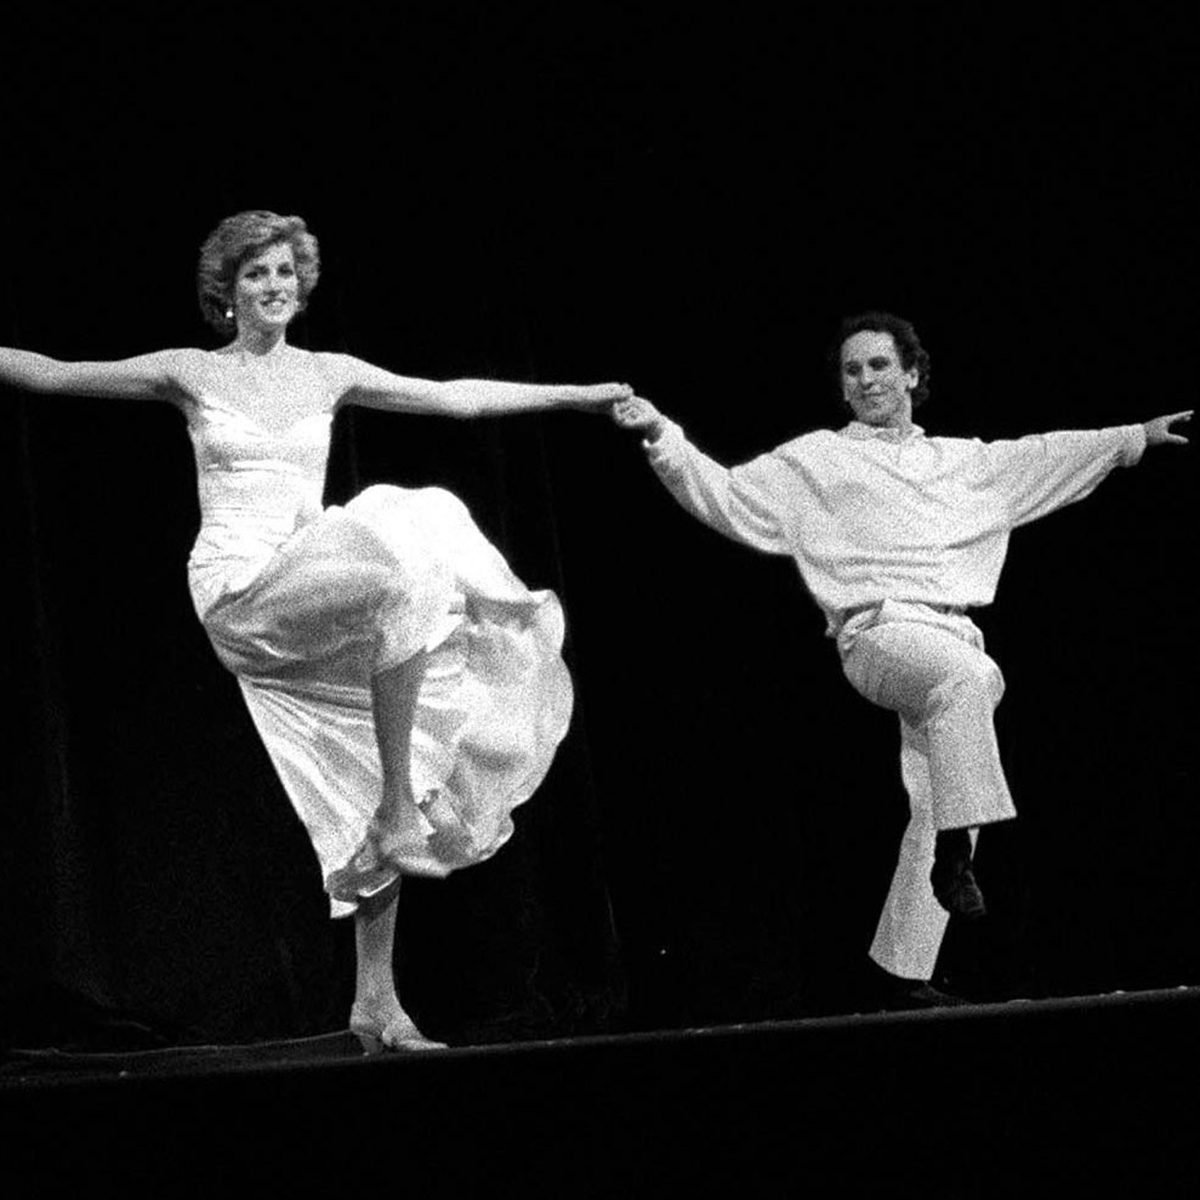 Black and white photo of two people dancing